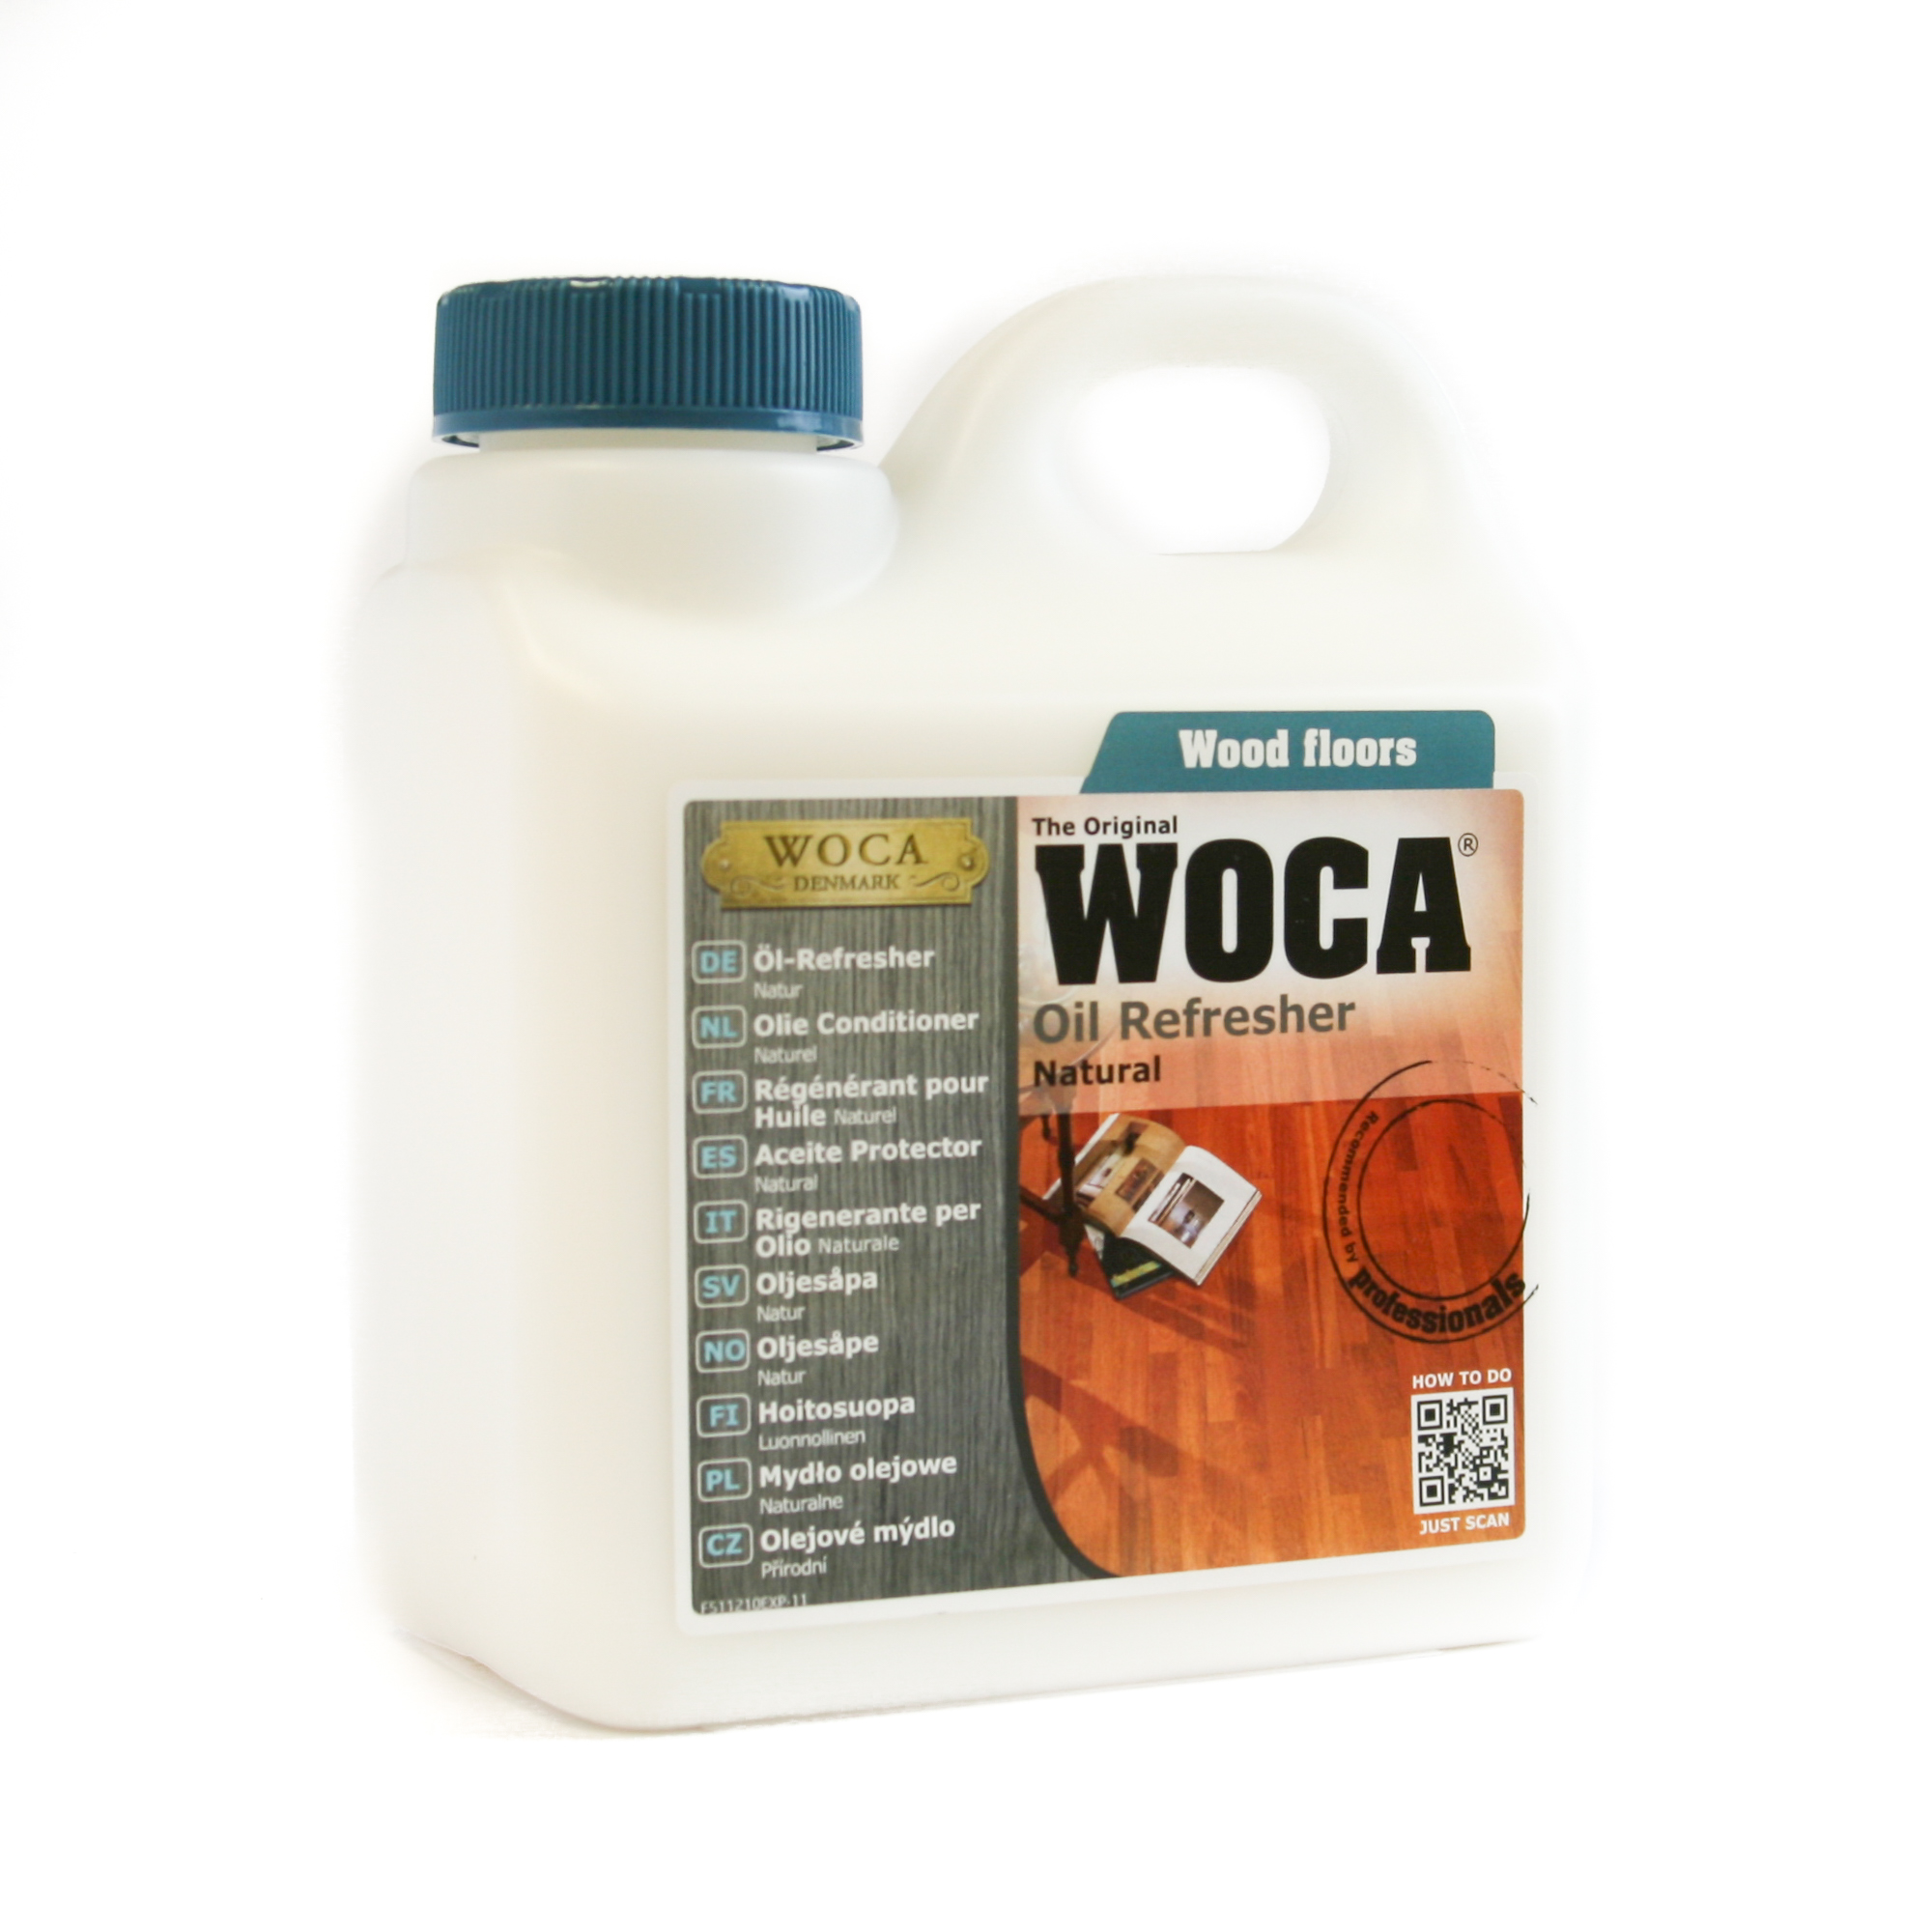 WOCA Oil Refresher Will Refresh Your Floor  Unique Wood